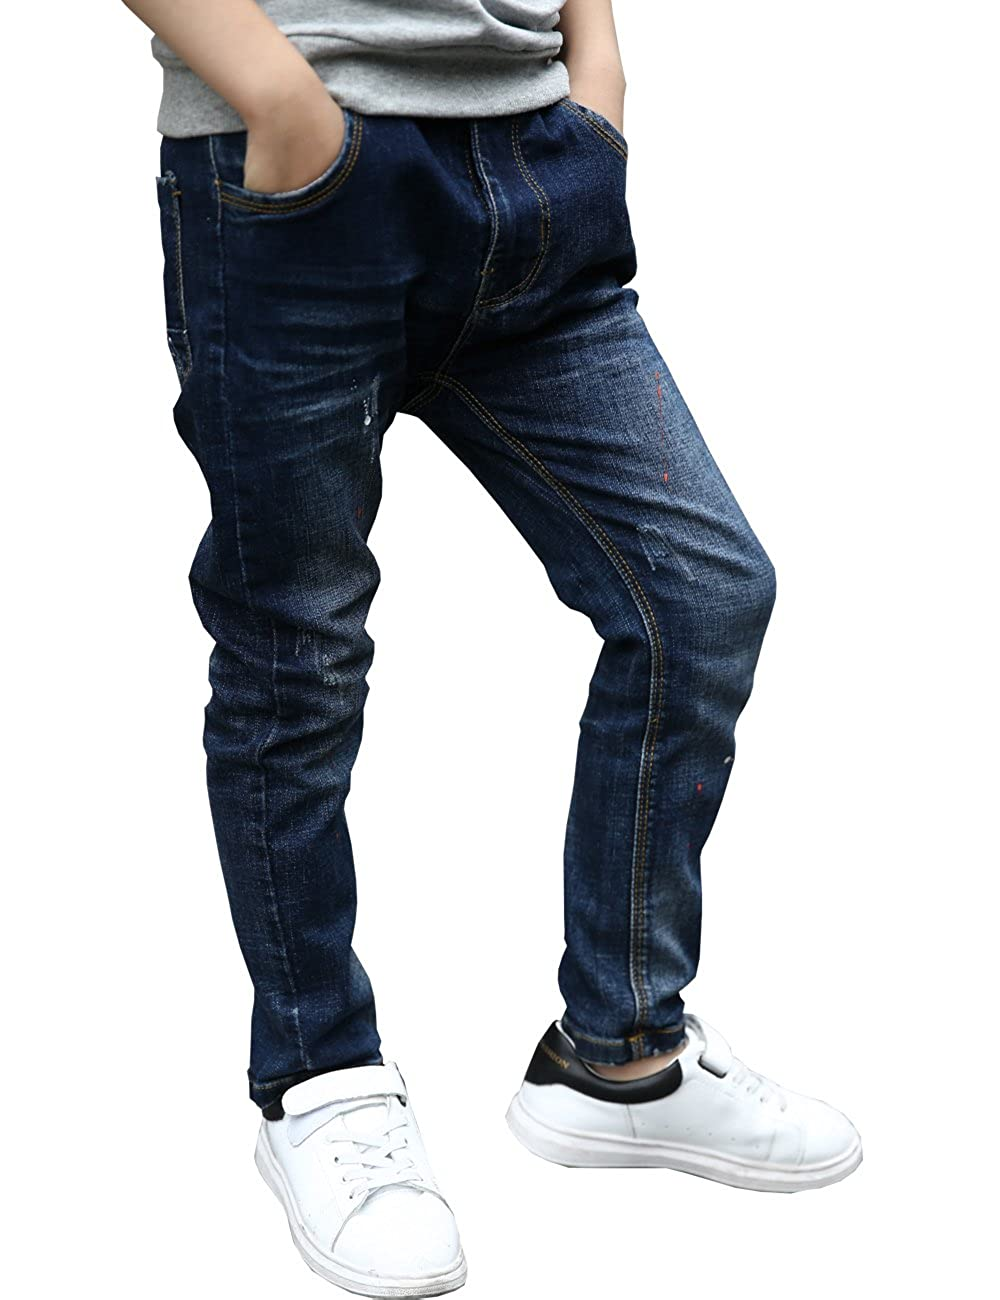 BYCR Boys' Skinny Elastic Waist Denim Jeans Pull On Pants for Kids Age 4-14 Years